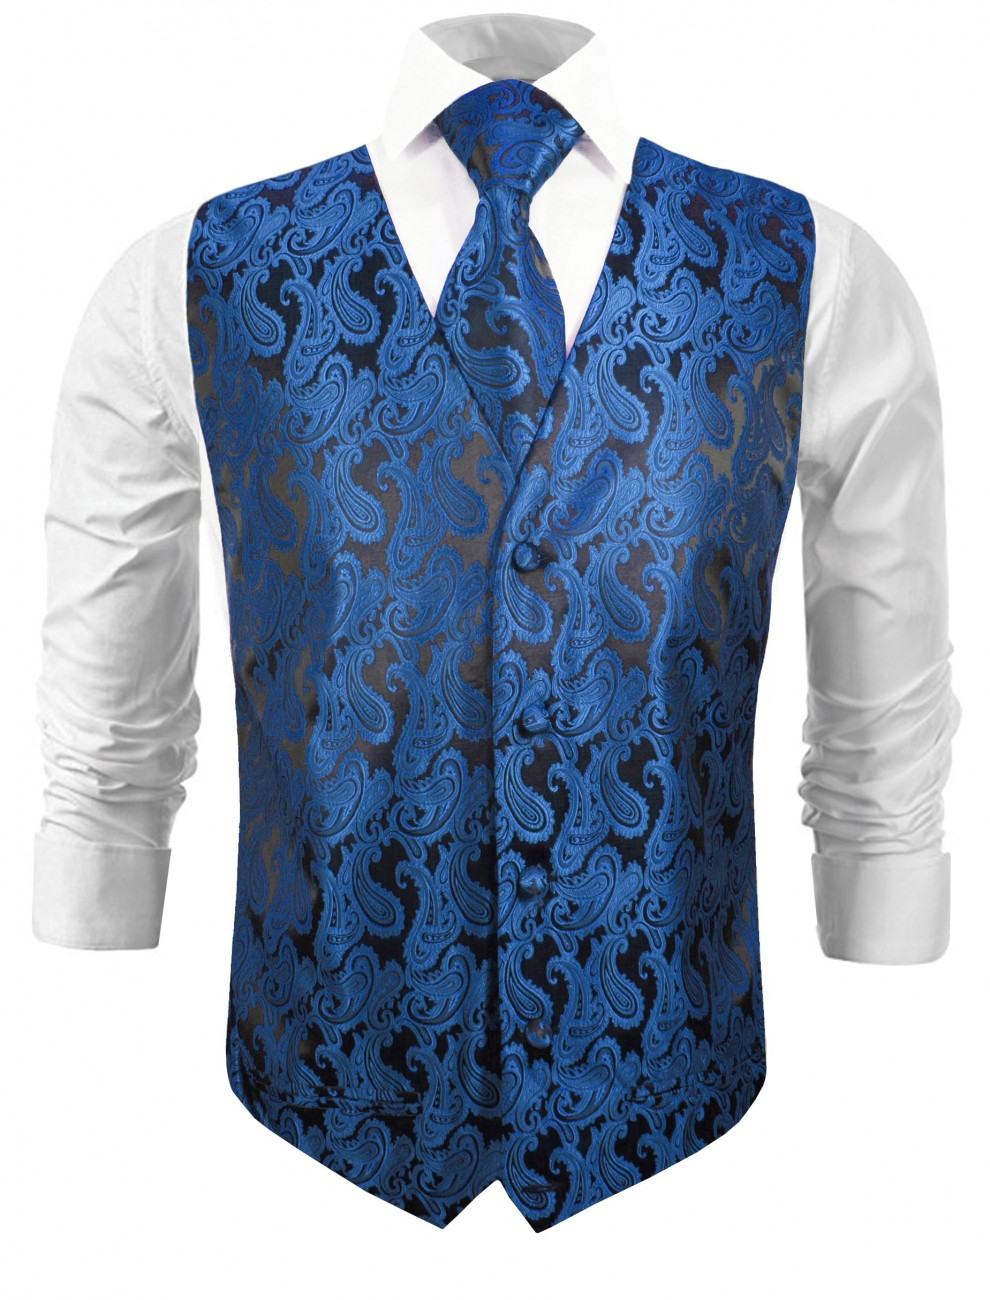 Wedding vest with necktie black blue paisley